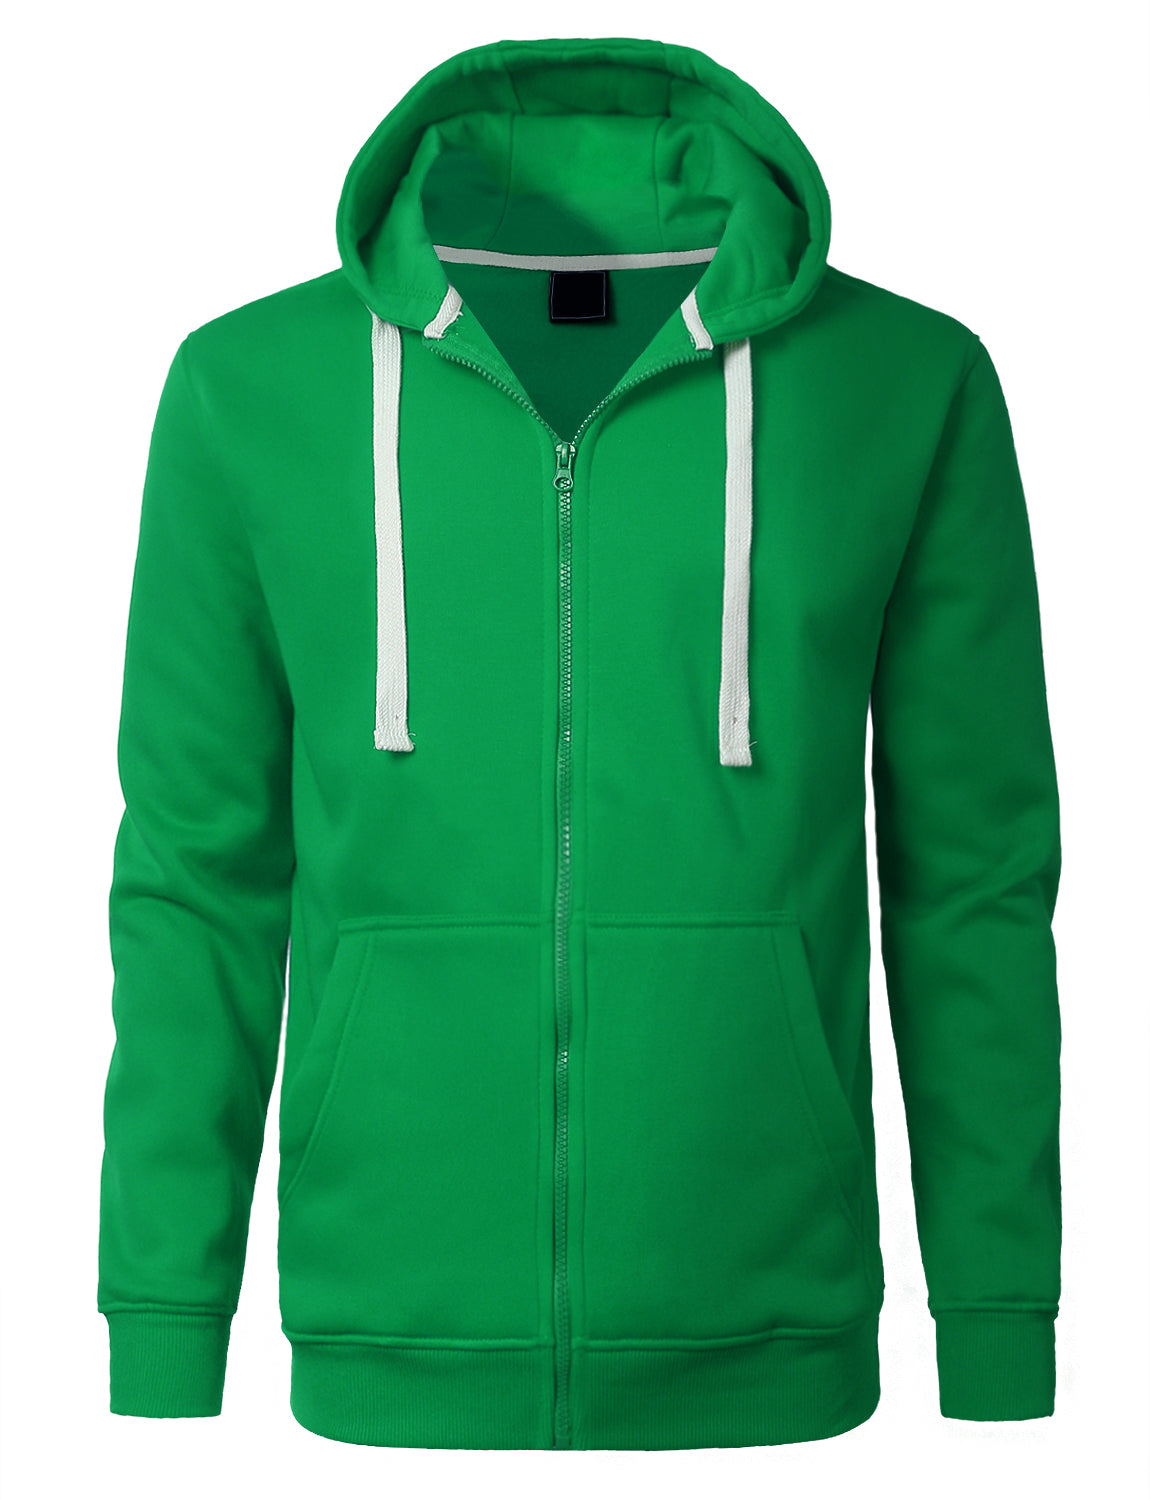 KGREEN Basic Zip-Up Fleece Hoodie Jacket - URBANCREWS